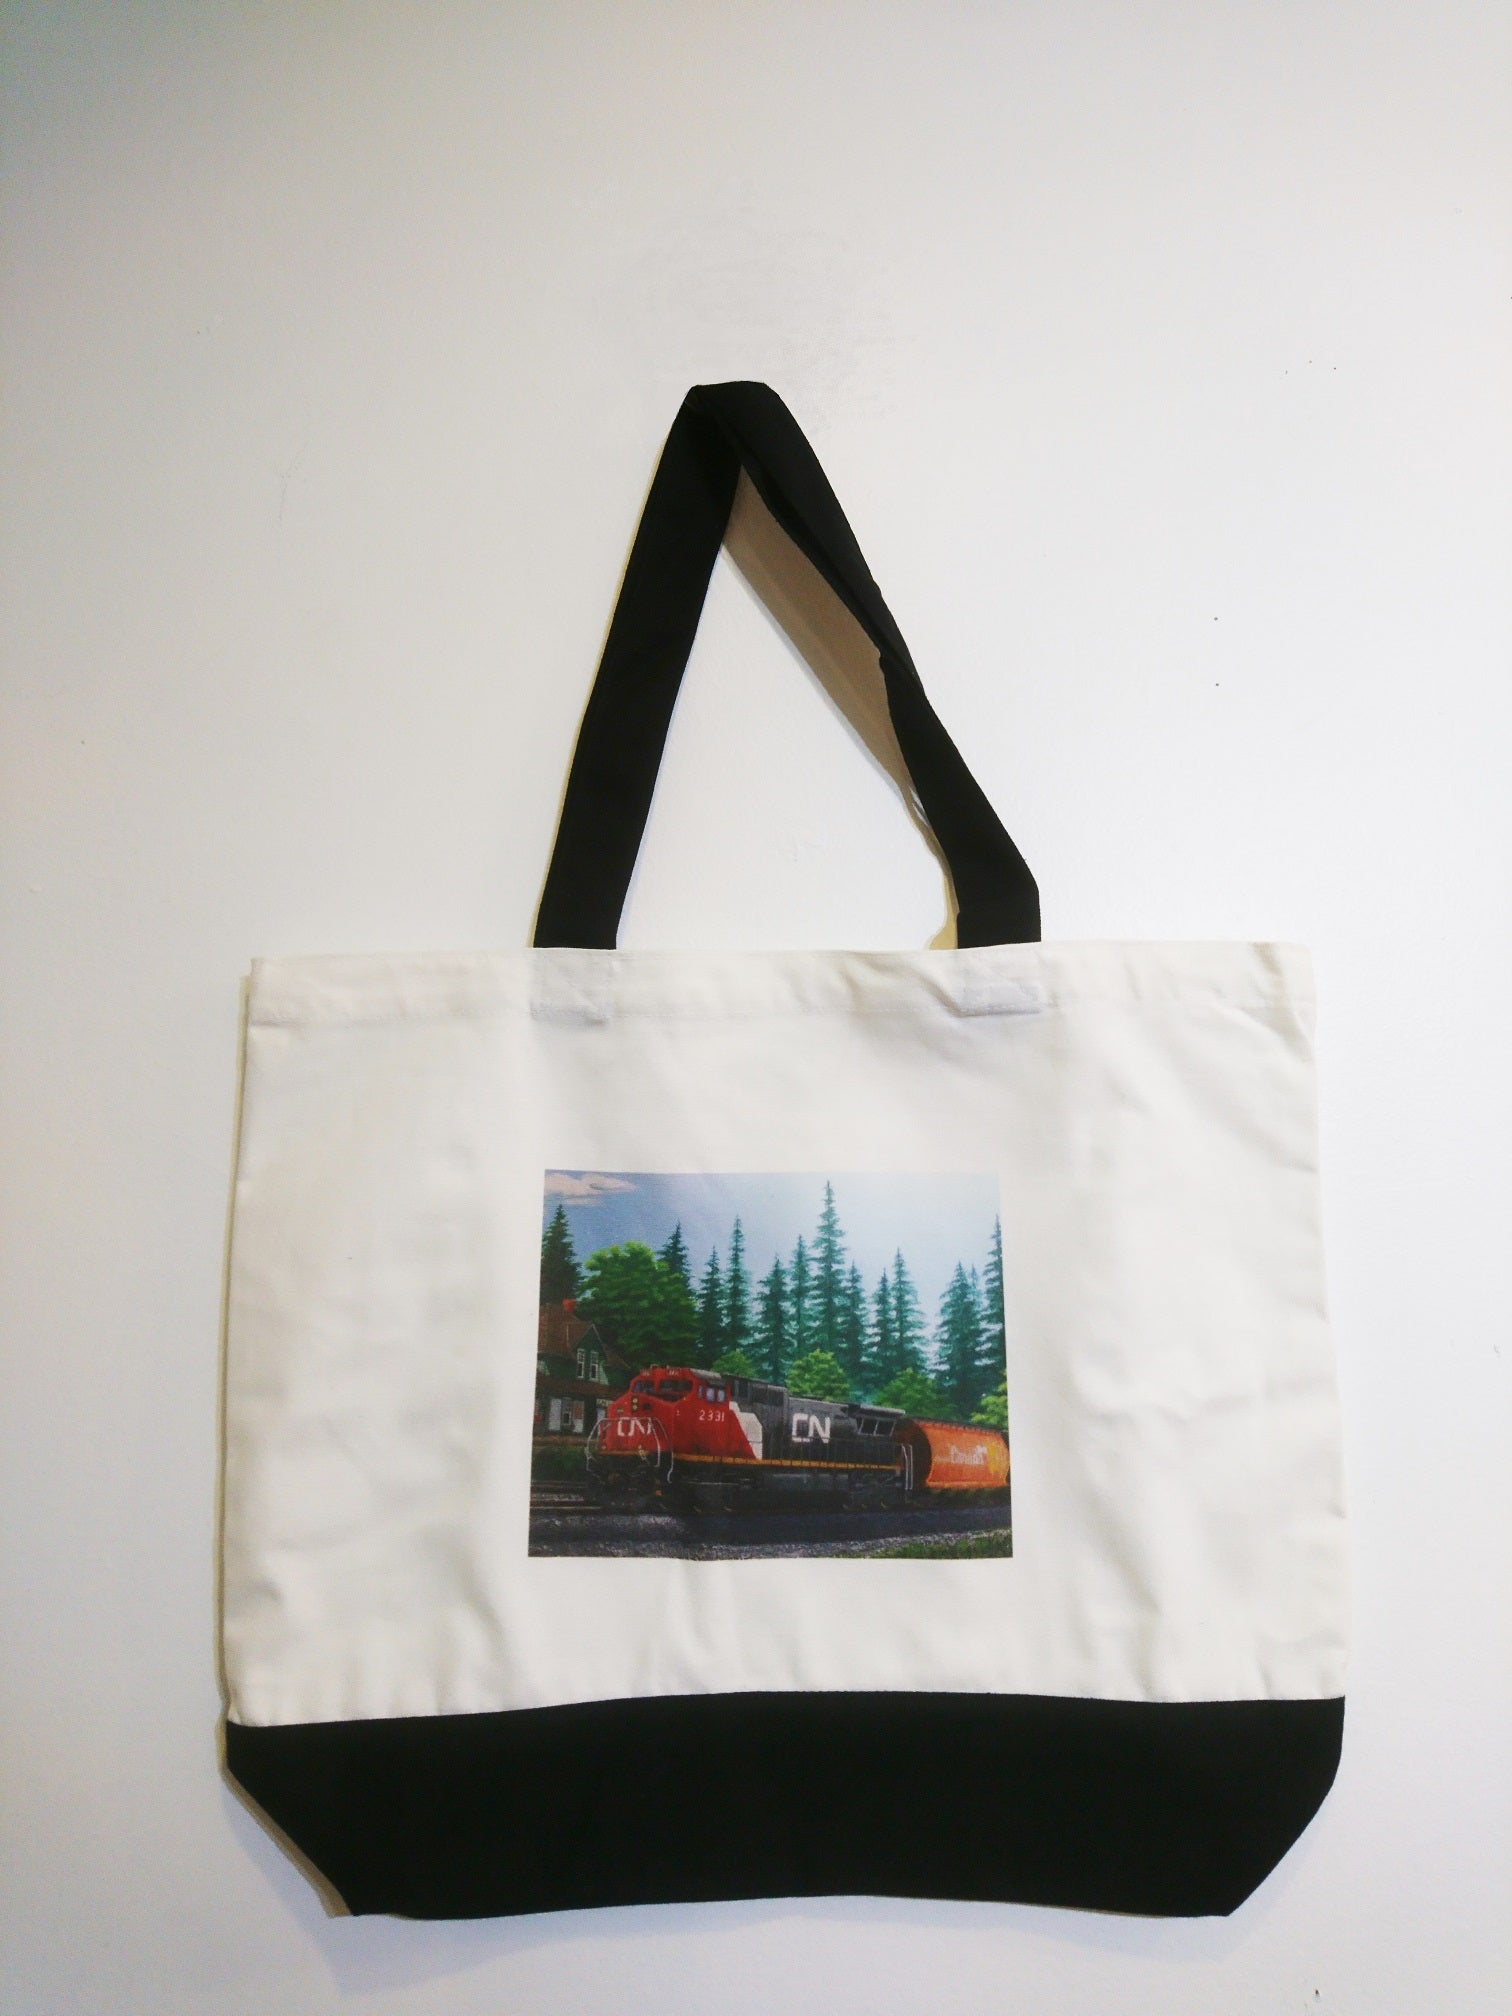 CN Train Tote Bag